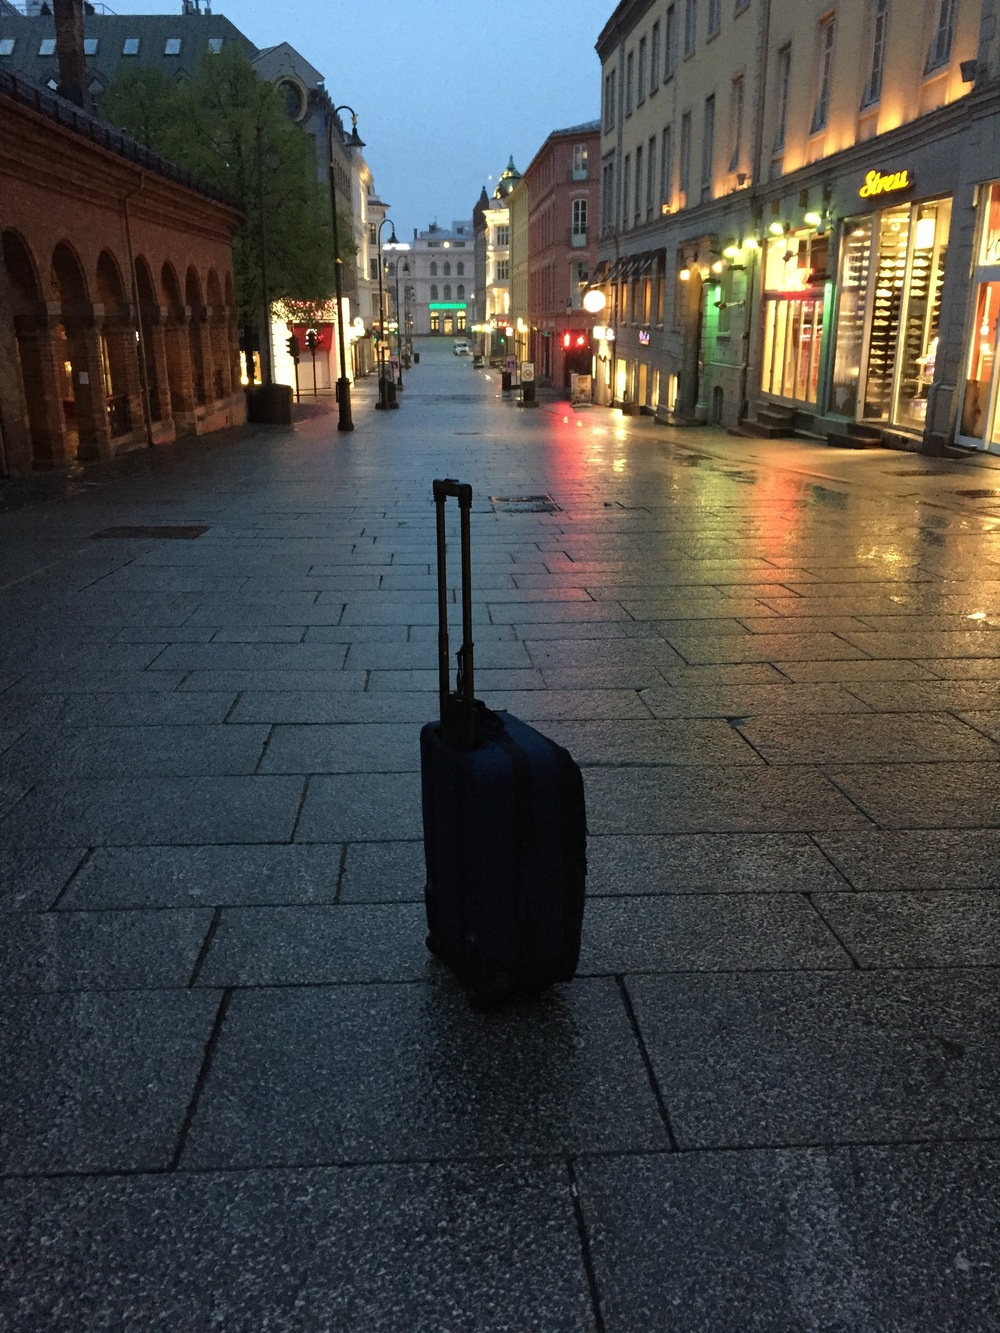 Lug this thing around the streets of Oslo and you'll want to leave it in the middle of the street too. Even if it's only with you because you're heading to the airport.